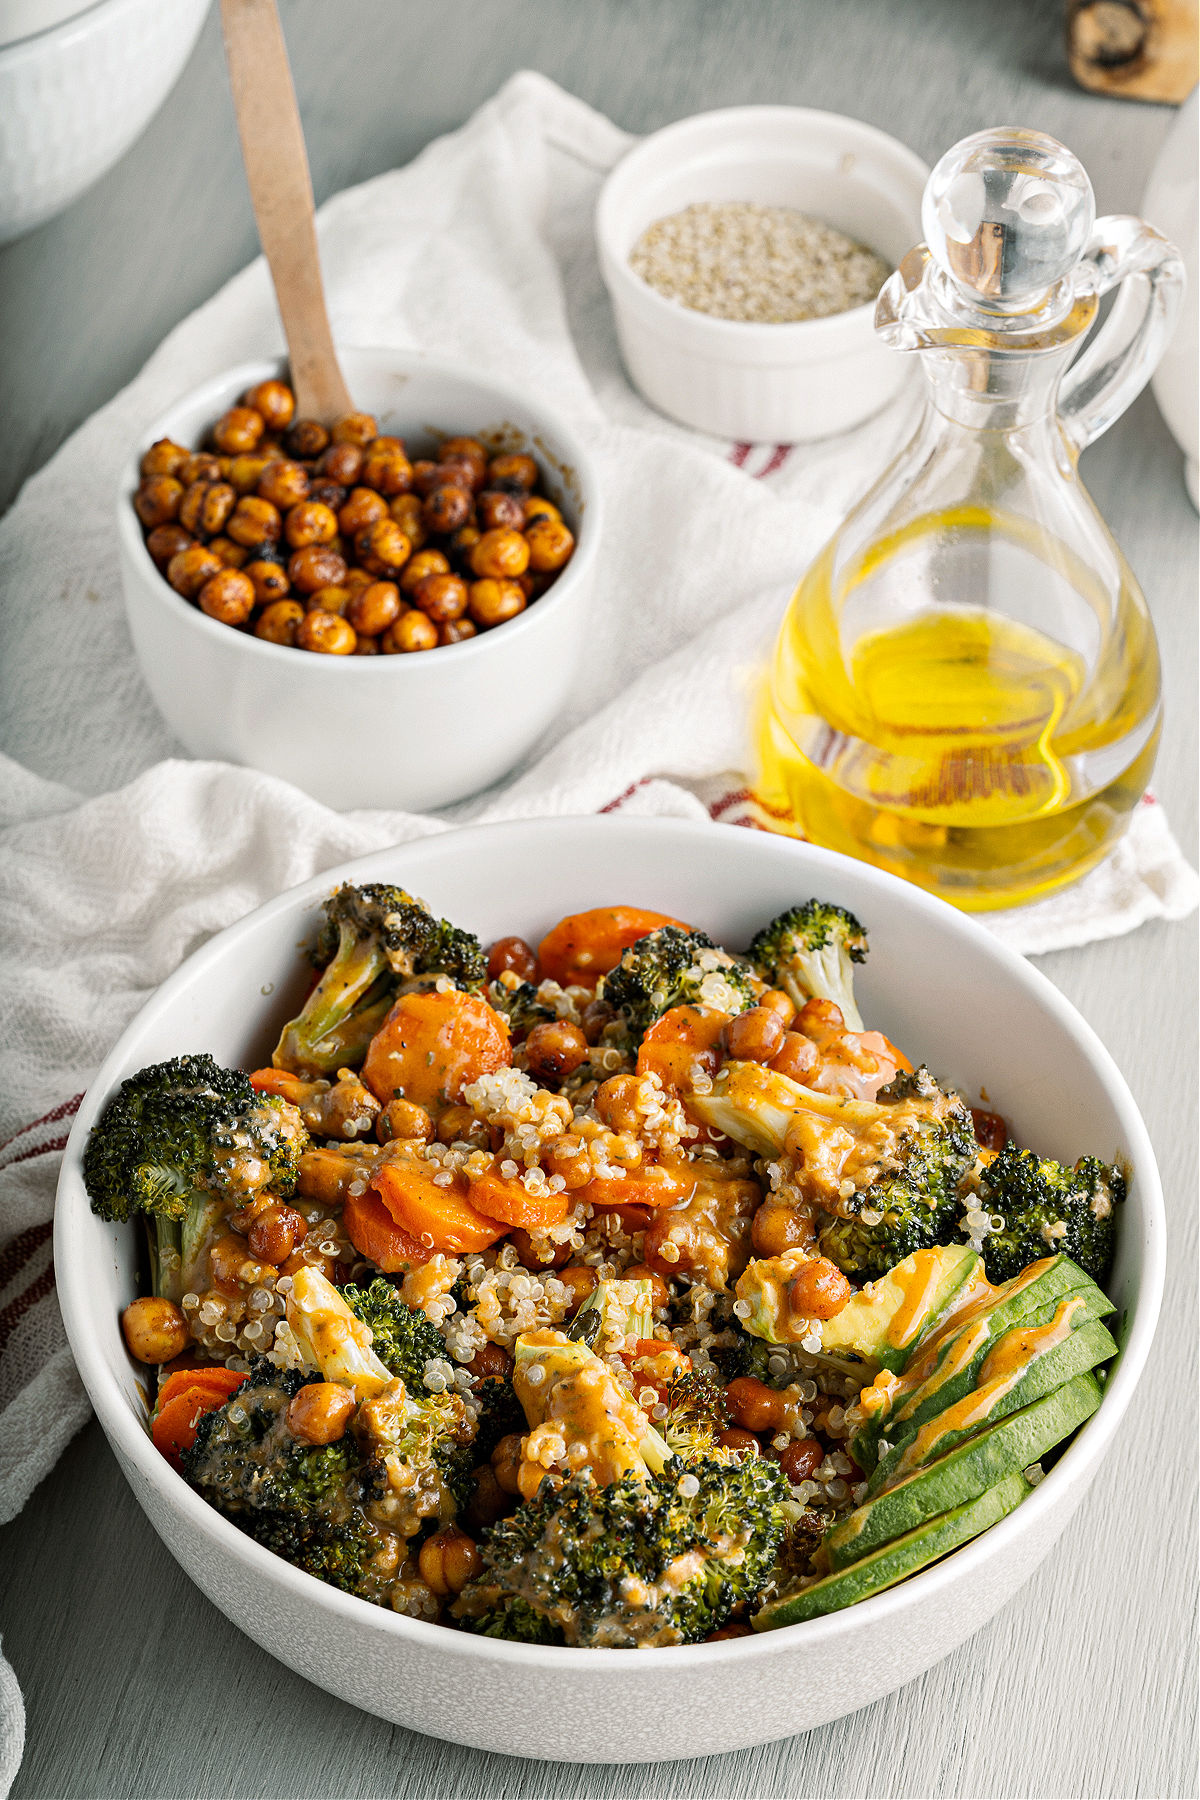 Broccoli buddha bowl in a white serving bowl with chickpeas on the side.